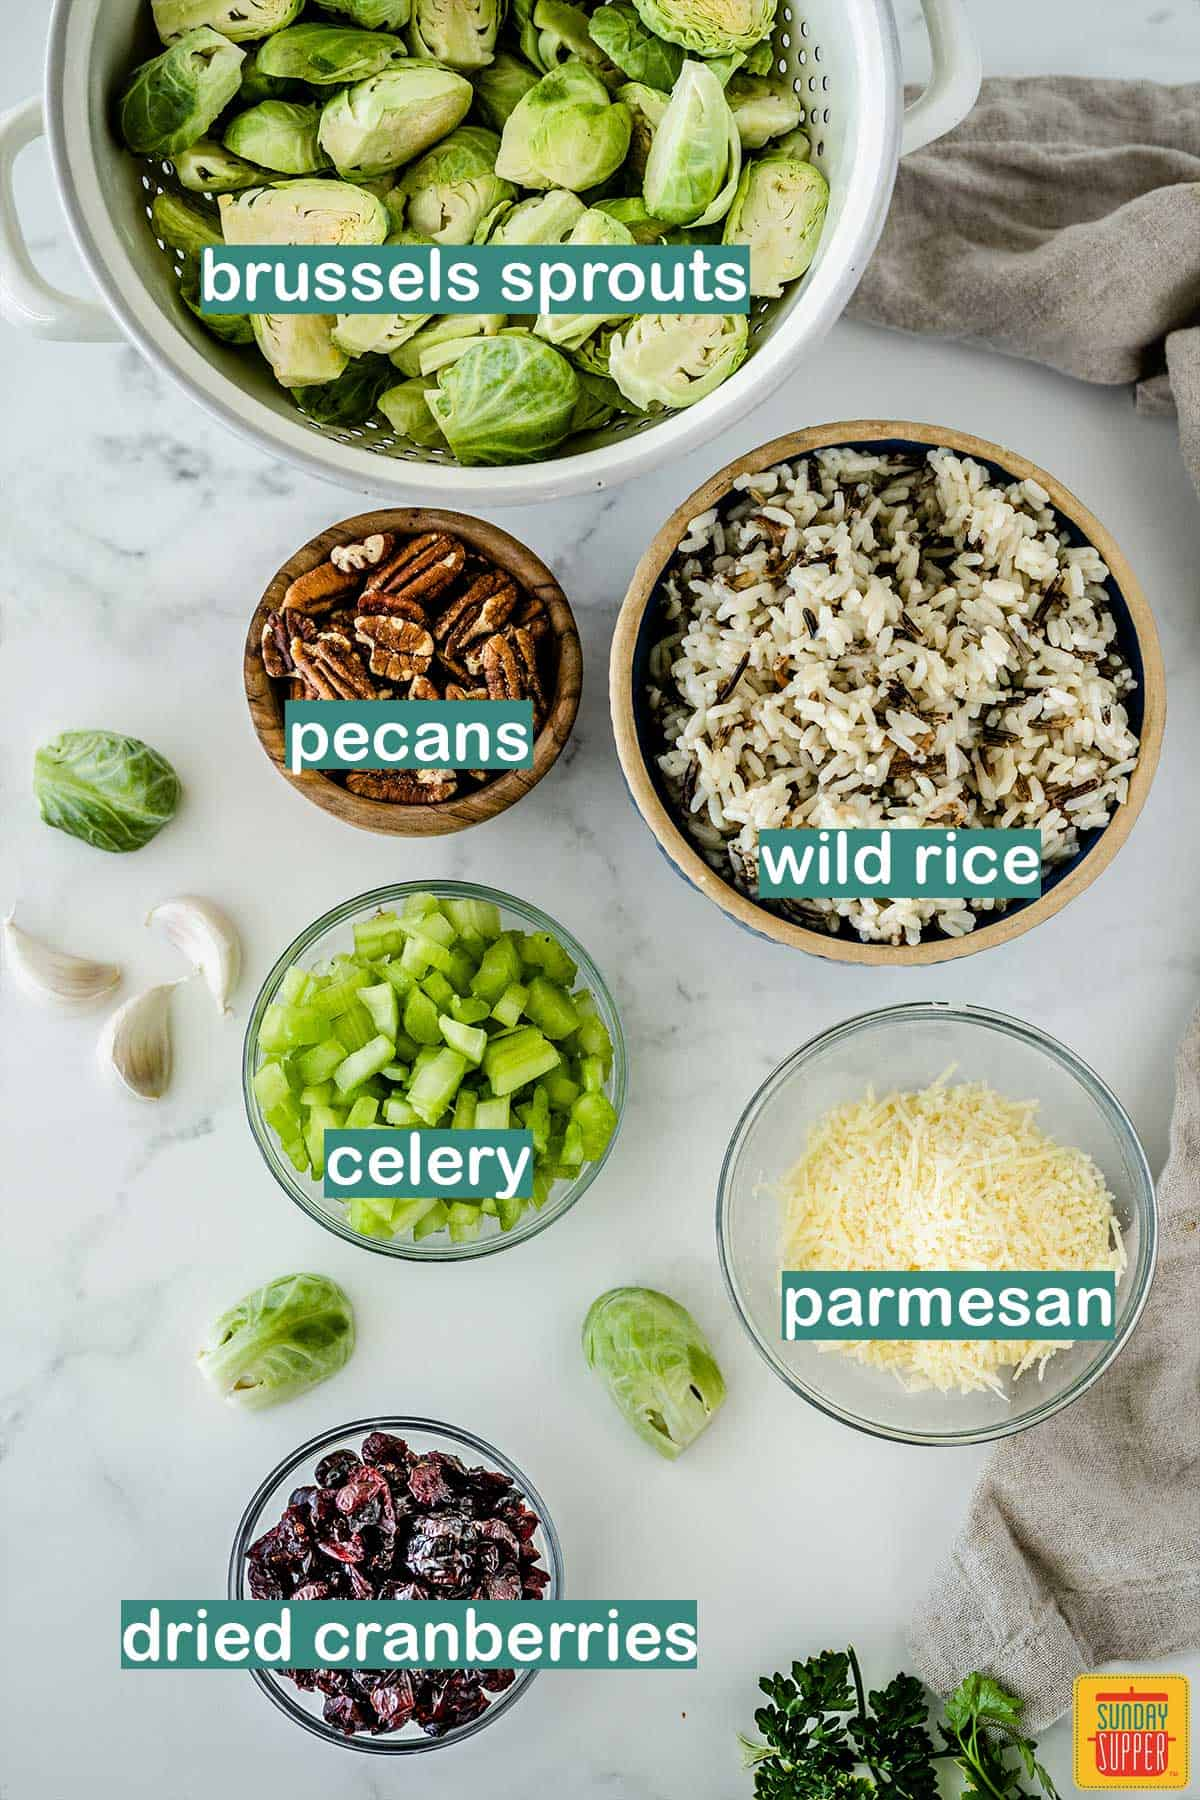 Ingredients to make Roasted brussels sprouts salad on a white surface with labels